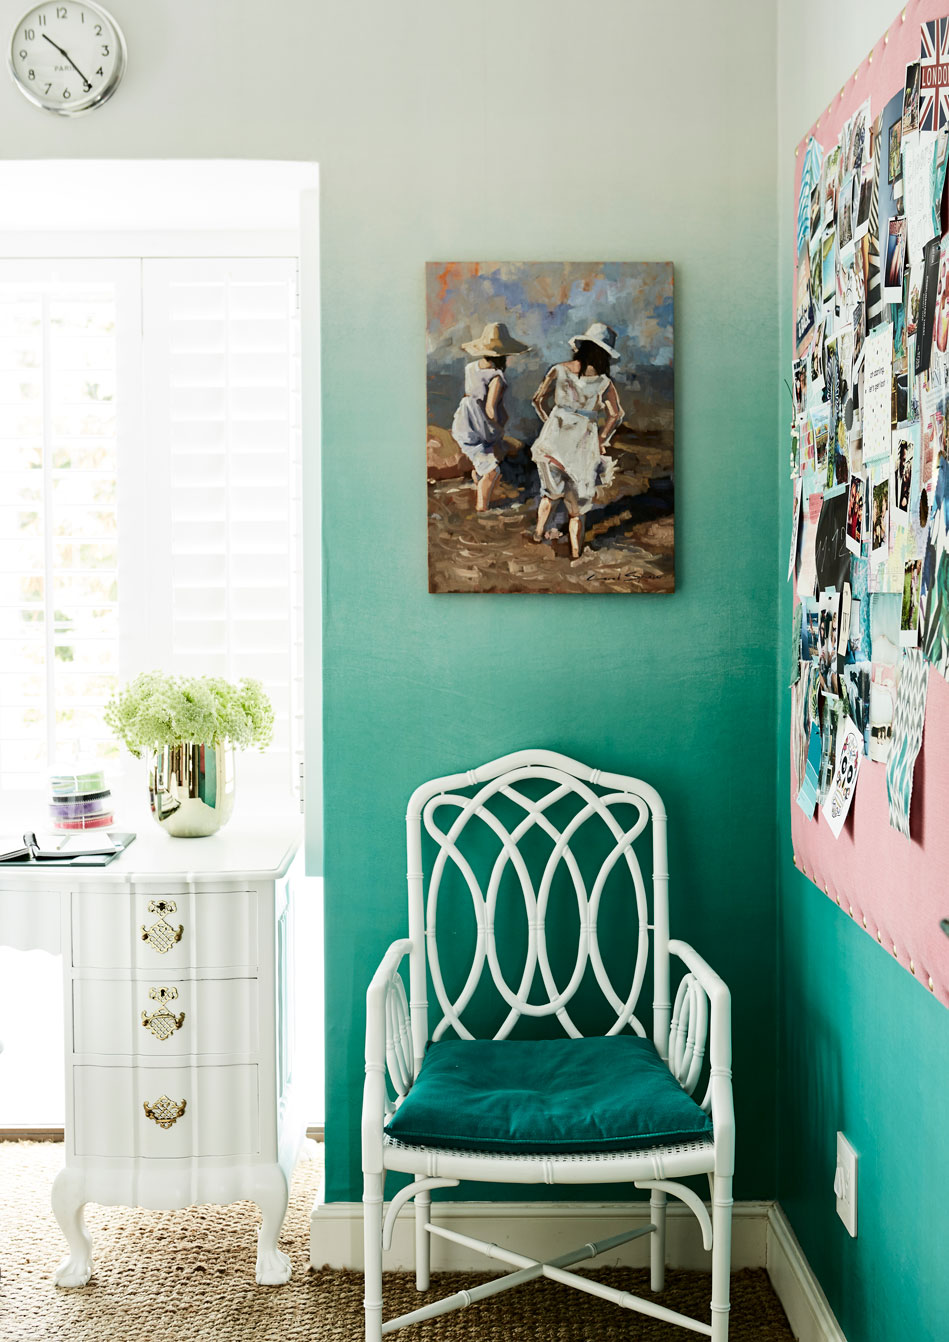 Kim!&s perfectly petite home office is on the first floor. It features Saraille $ع a lovely ombre wallpaper by Designers Guild (designersguild.com) in Grass $ع on the walls, and a charming white chair that is an upcycled find from a Stellenbosch junk store.